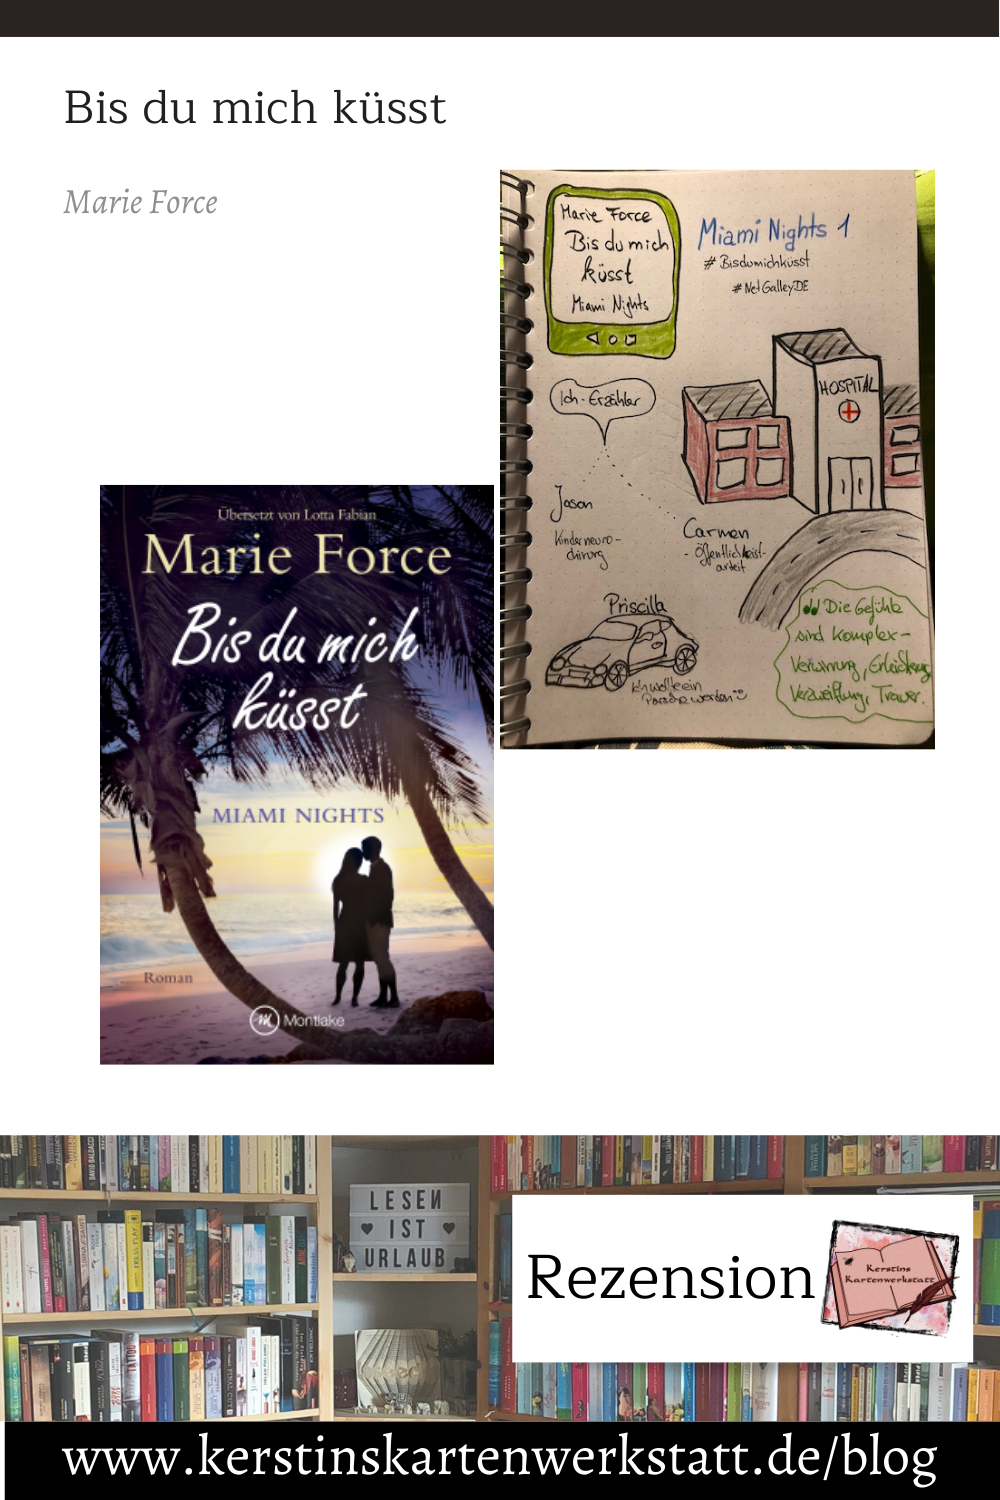 Bis du mich küsst von Marie Force Sketchnote und Rezension zum Buch von Kerstin Cornils